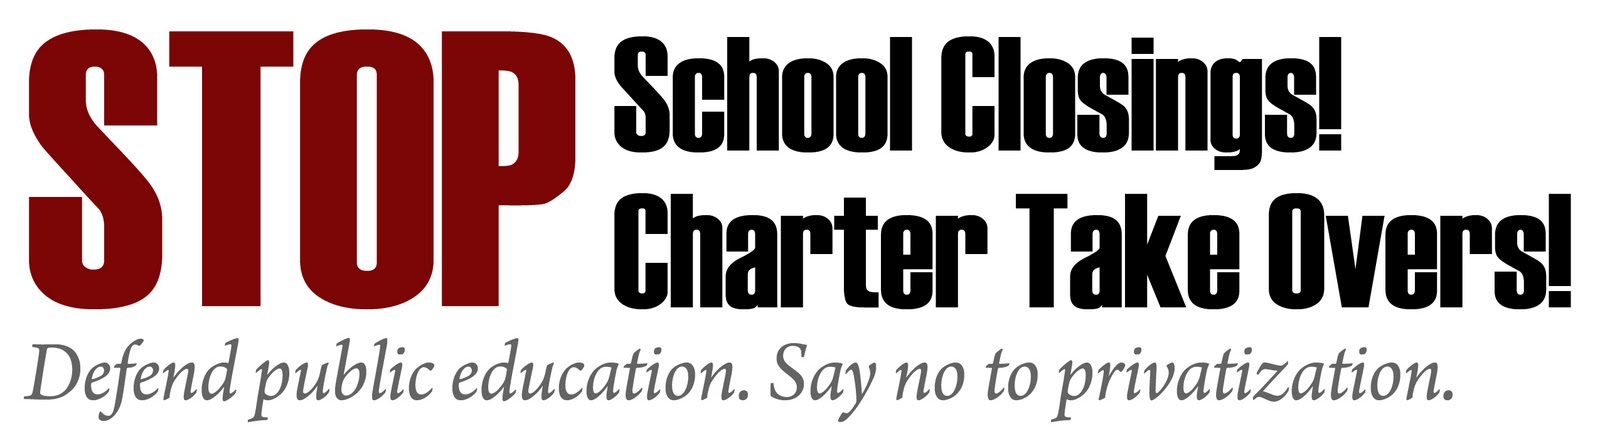 Grassroots Education Movement (NYC): Stop the SCHOOL CLOSINGS ...